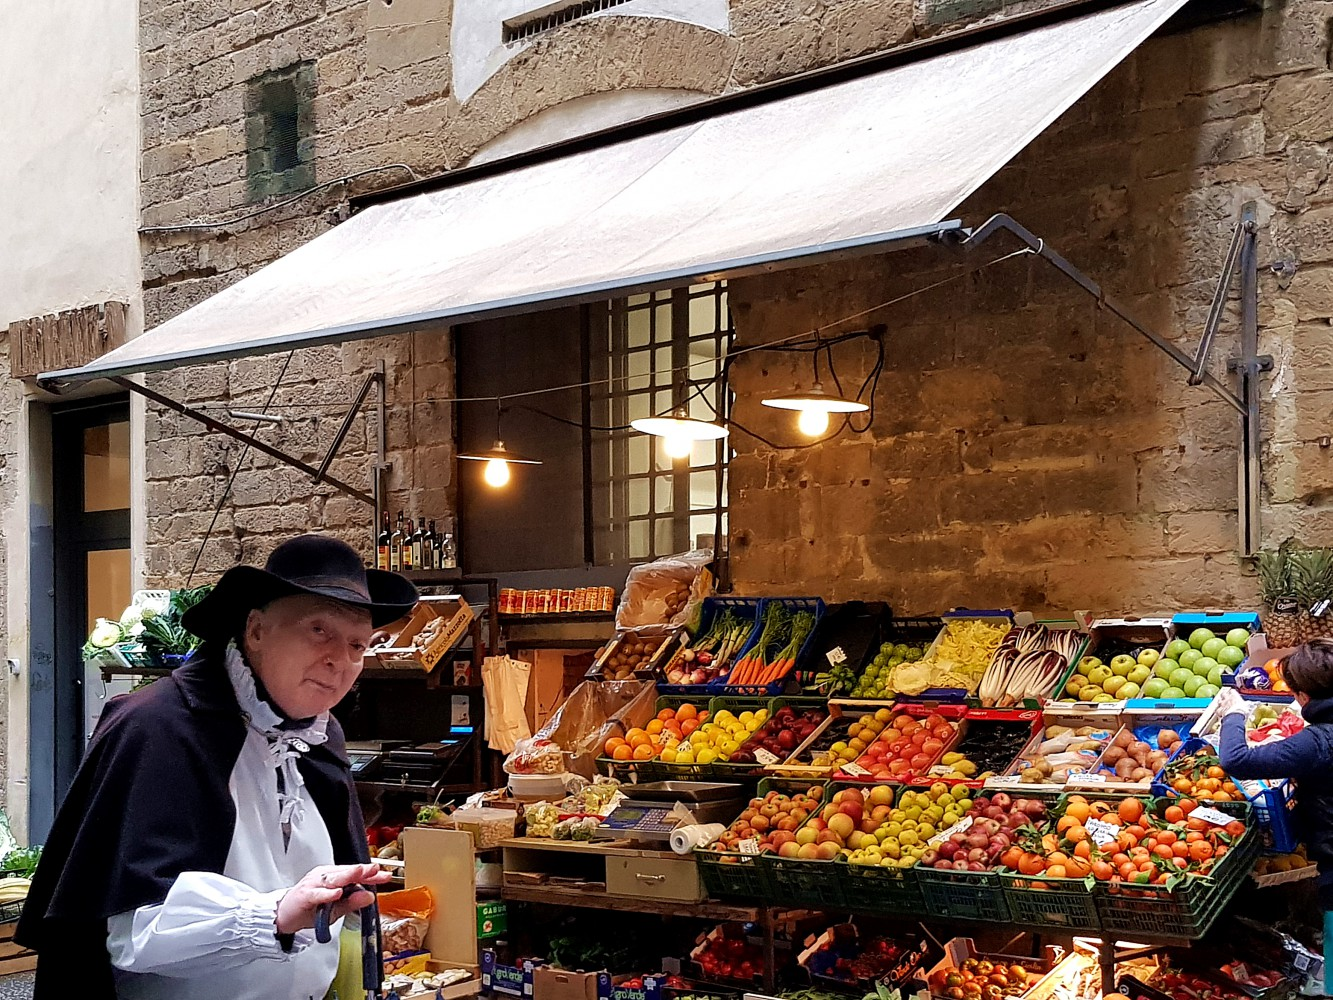 Markets and Wine Vendors